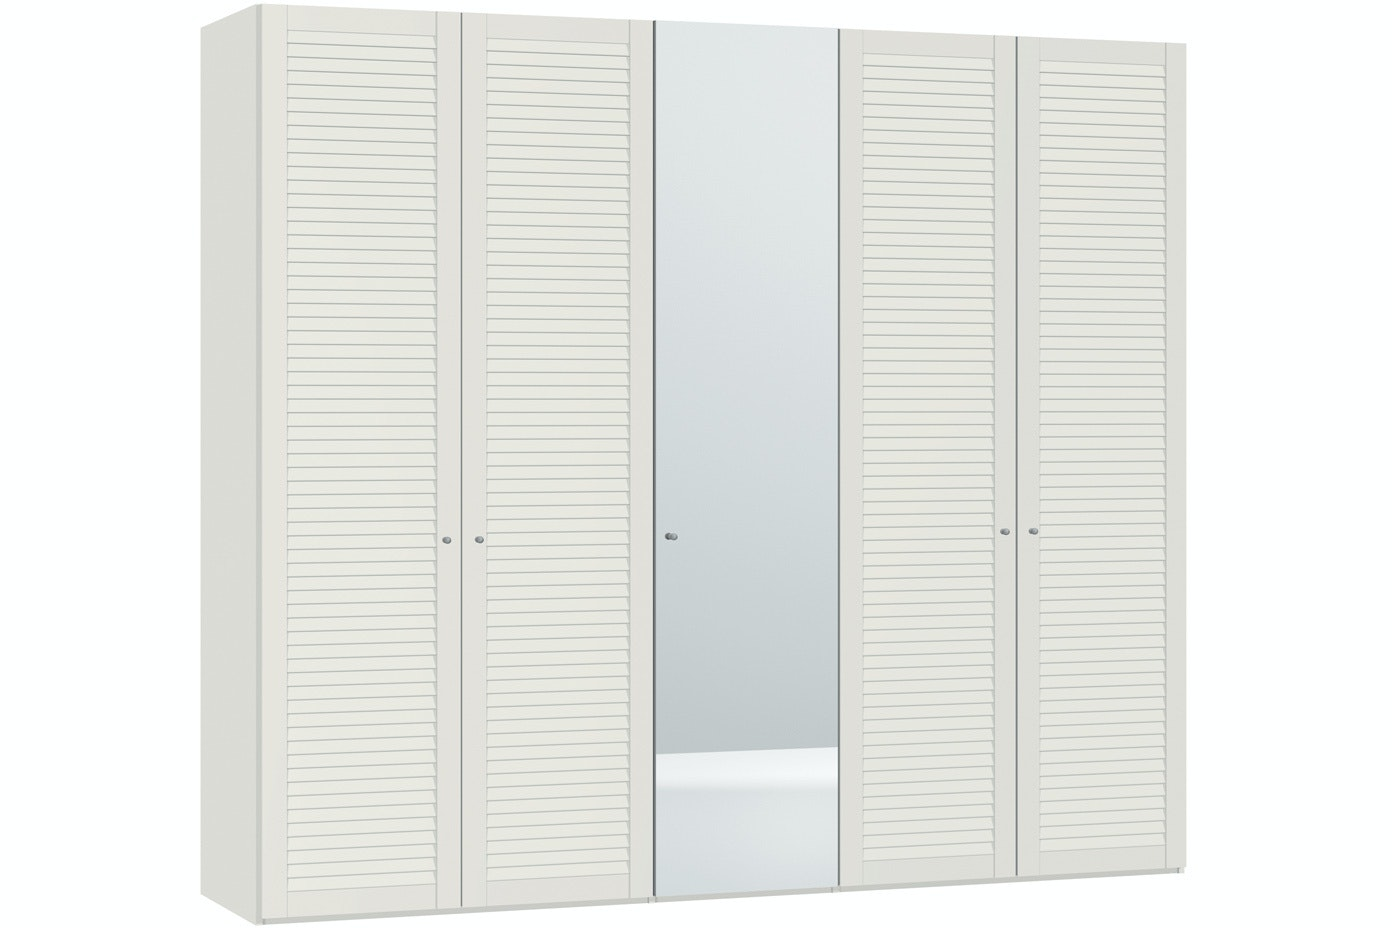 Sarah Hinged 5 Door Wardrobe 253Cm | Lamella + Mirror